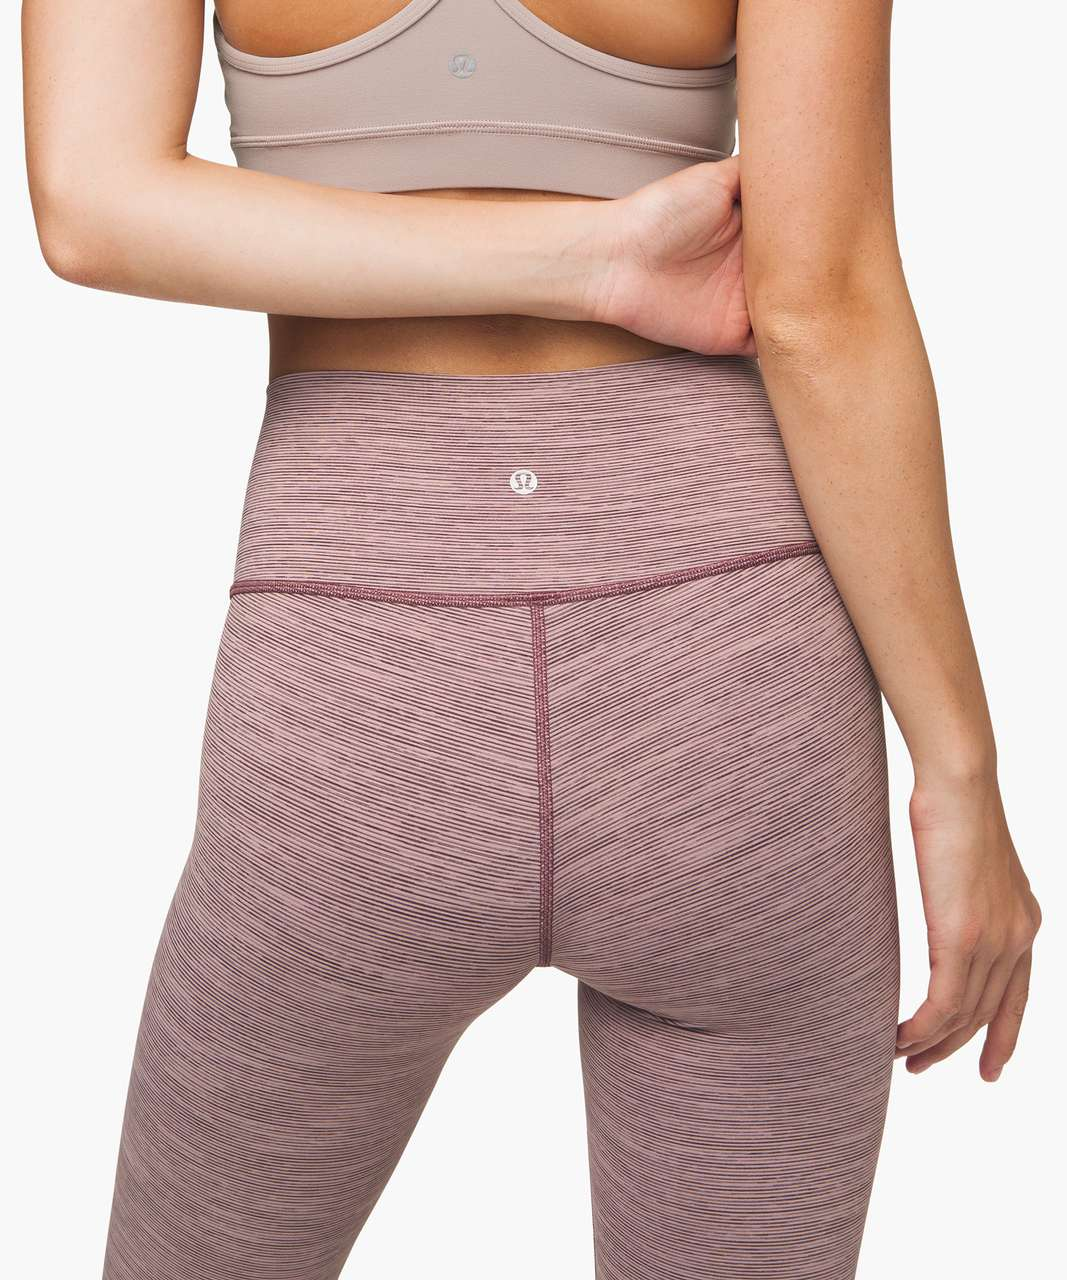 "Lululemon Wunder Under High Rise Tight 28"" *Luxtreme - Wee Are From Space Frosted Mulberry Black Currant"